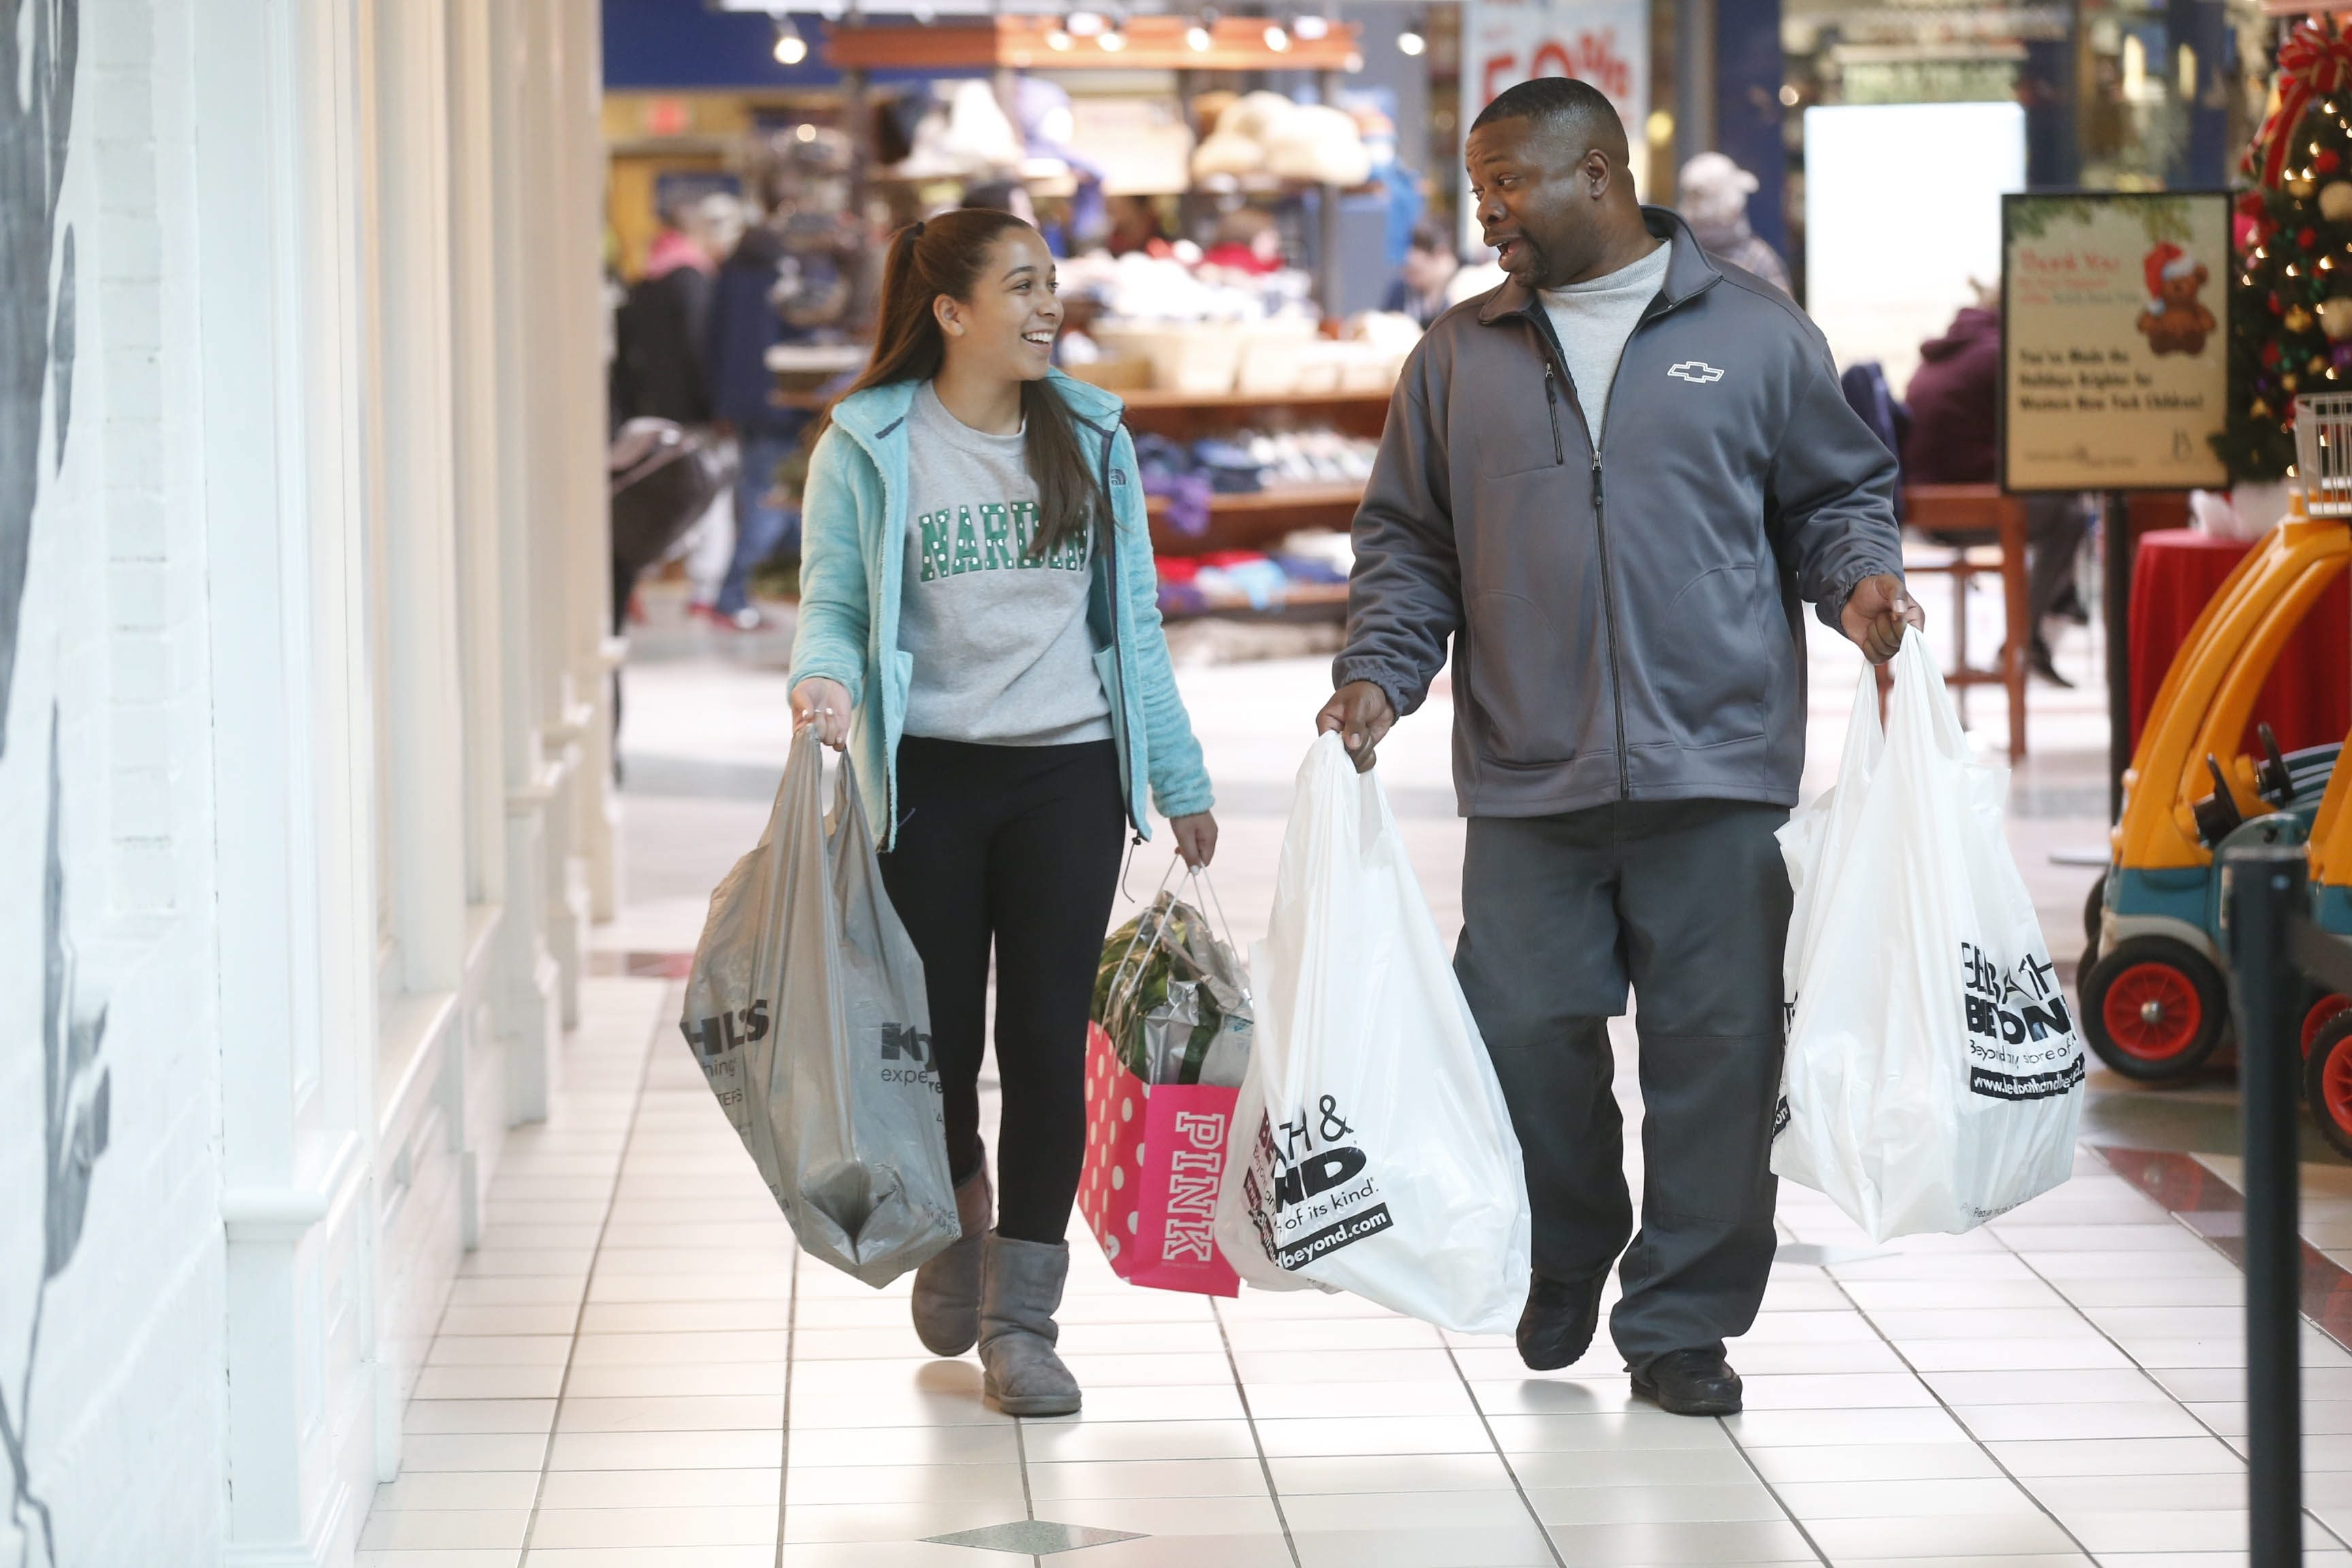 David Hartley and his daughter Alyssa, 13, of Amherst,  shop at Boulevard Mall on Niagara Falls Blvd. Sunday, Dec. 20, 2015.  (Robert Kirkham/Buffalo News)